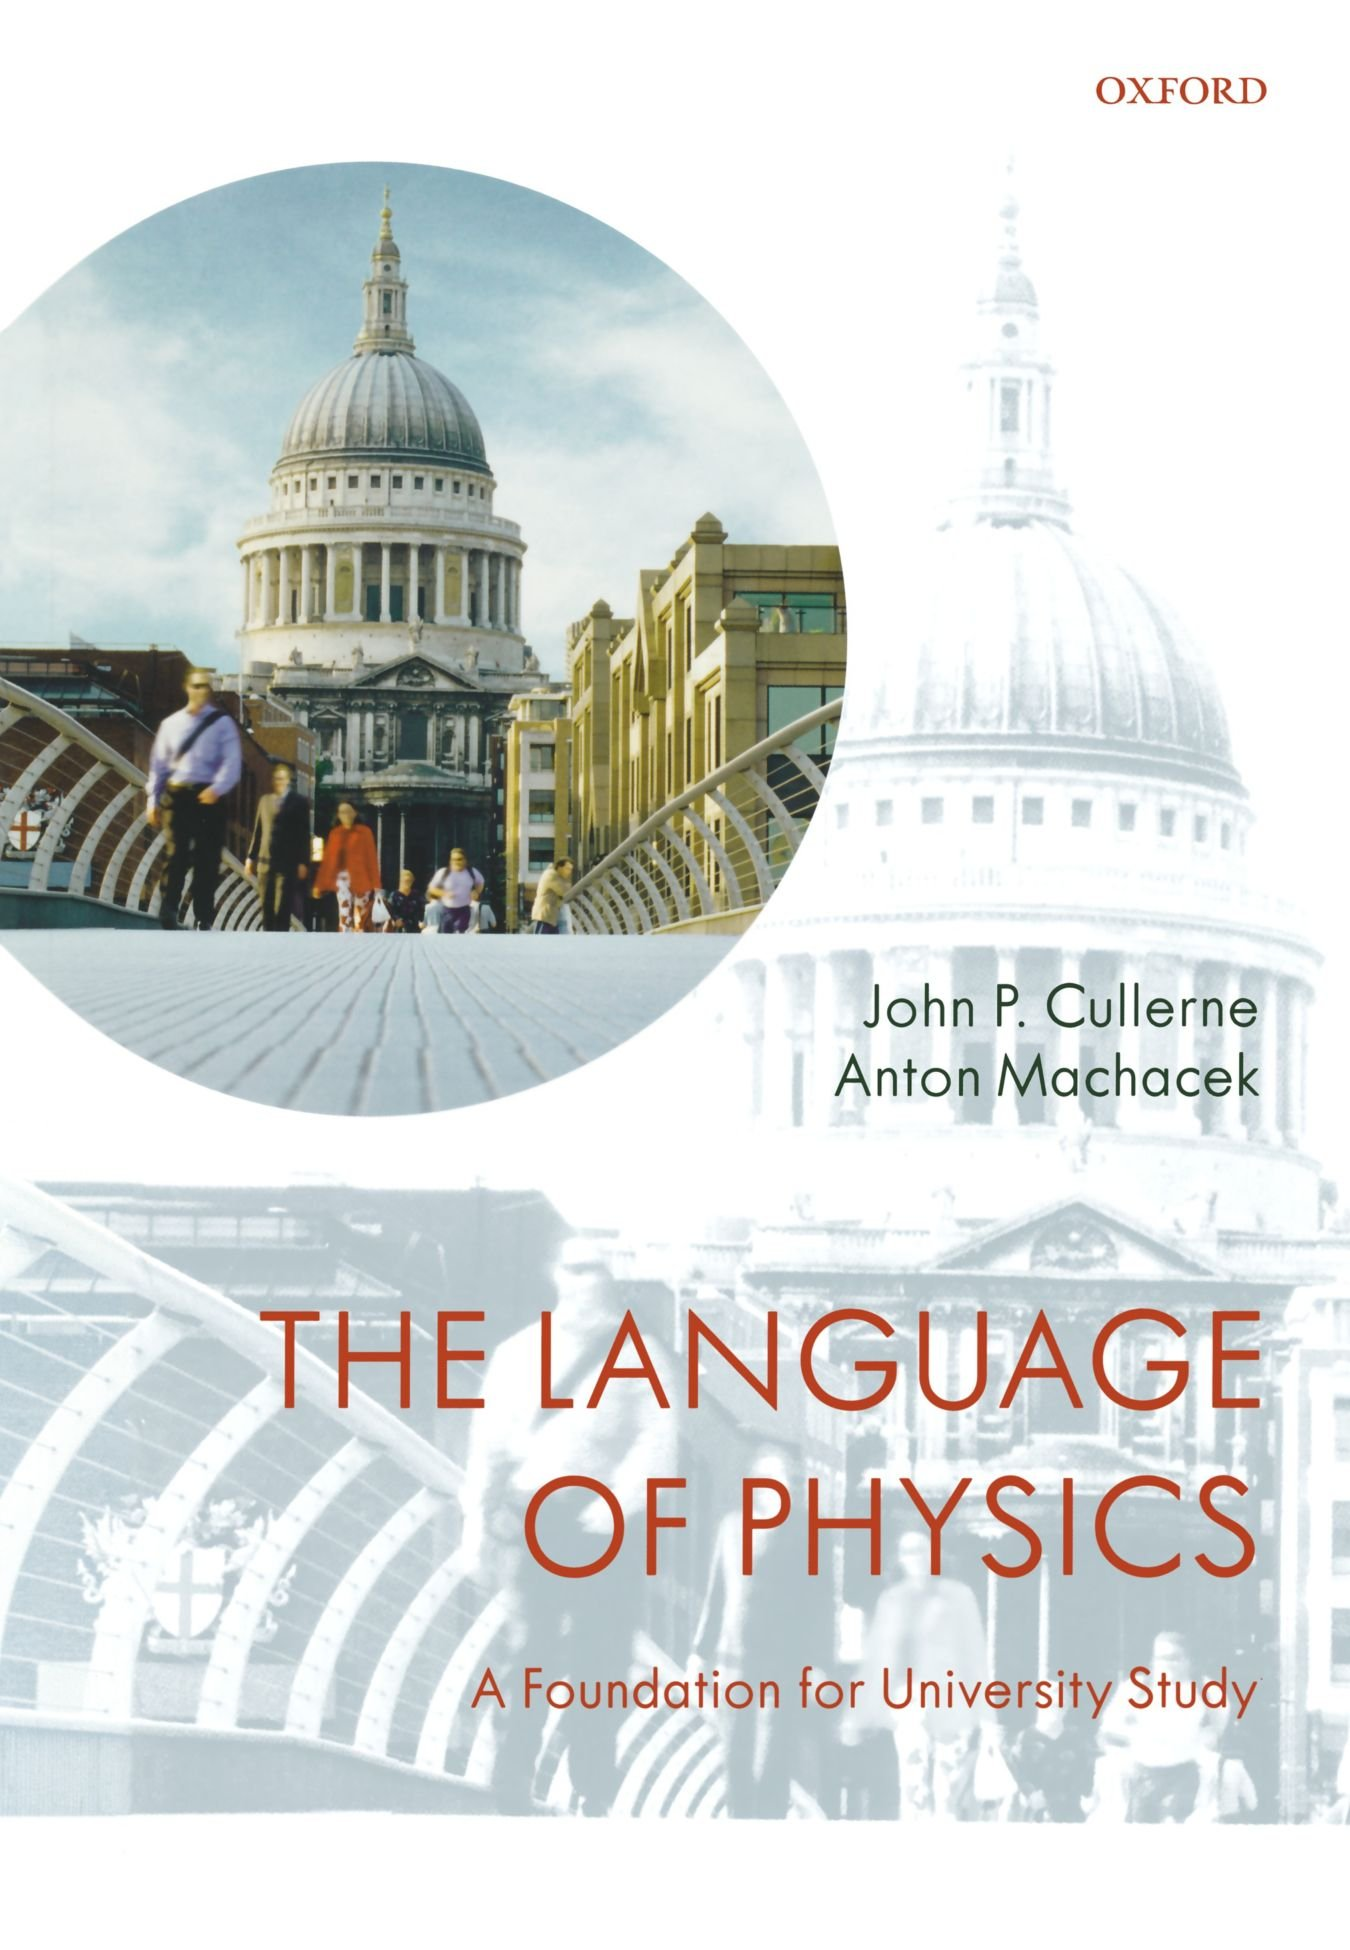 The Language of Physics: A Foundation for University Study by Oxford University Press